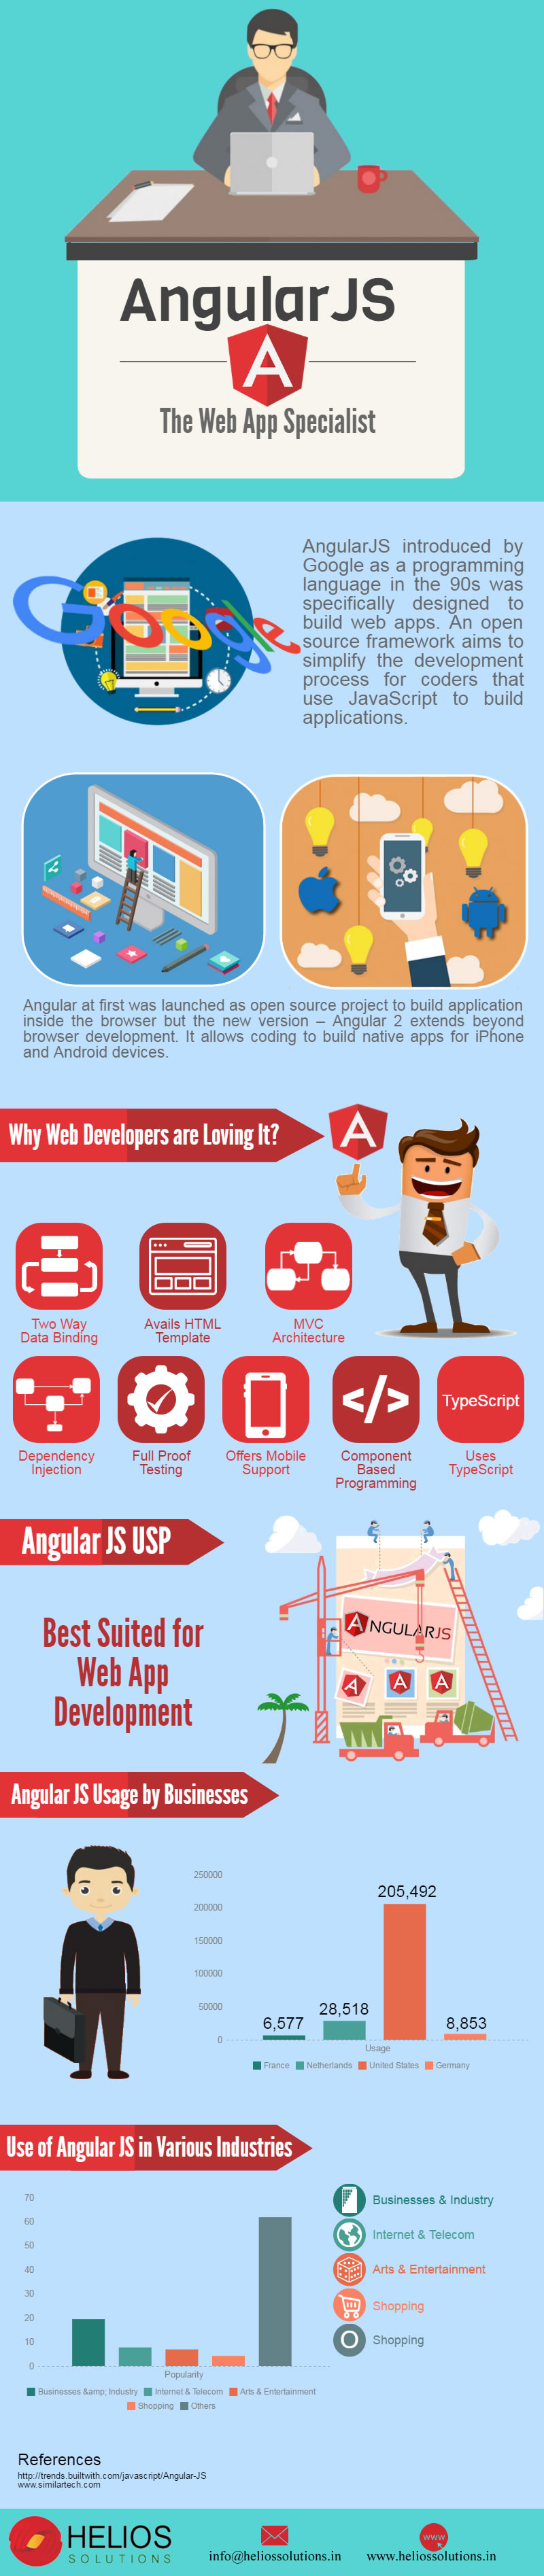 angularjs specialist india